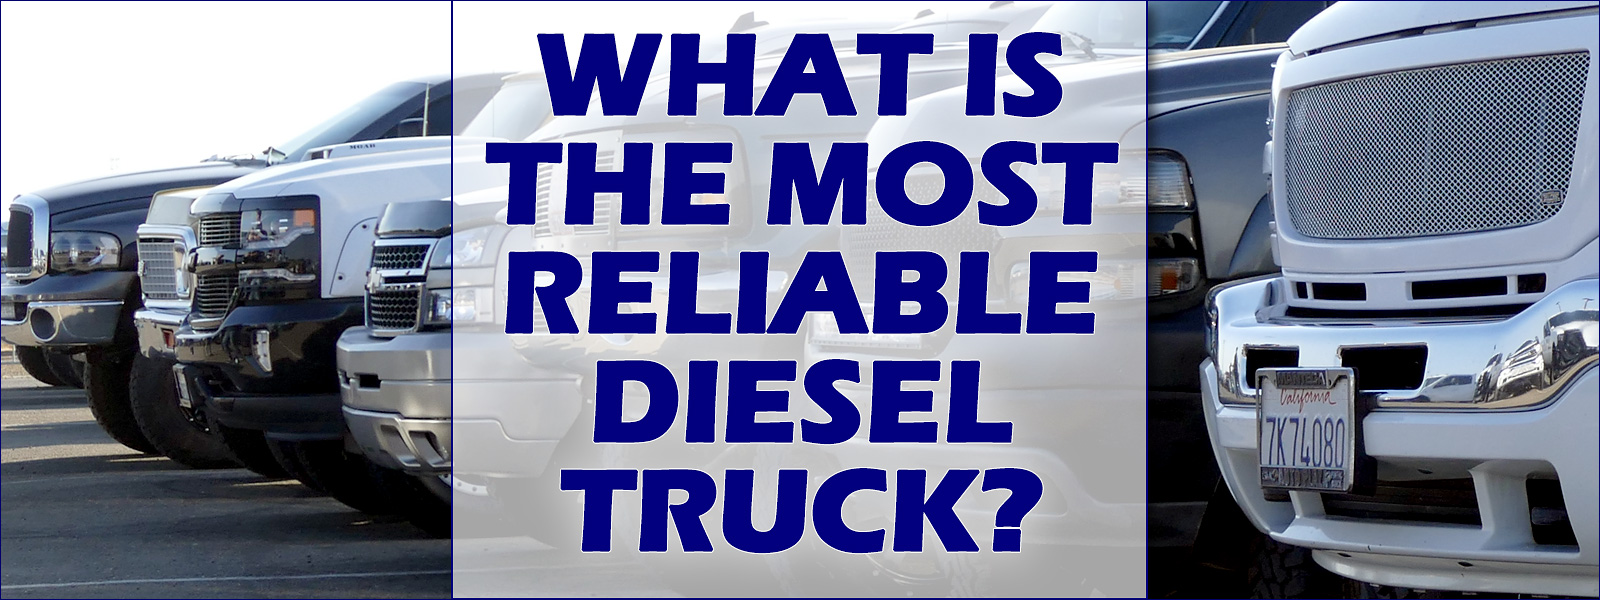 What is the Most Reliable Diesel Truck?